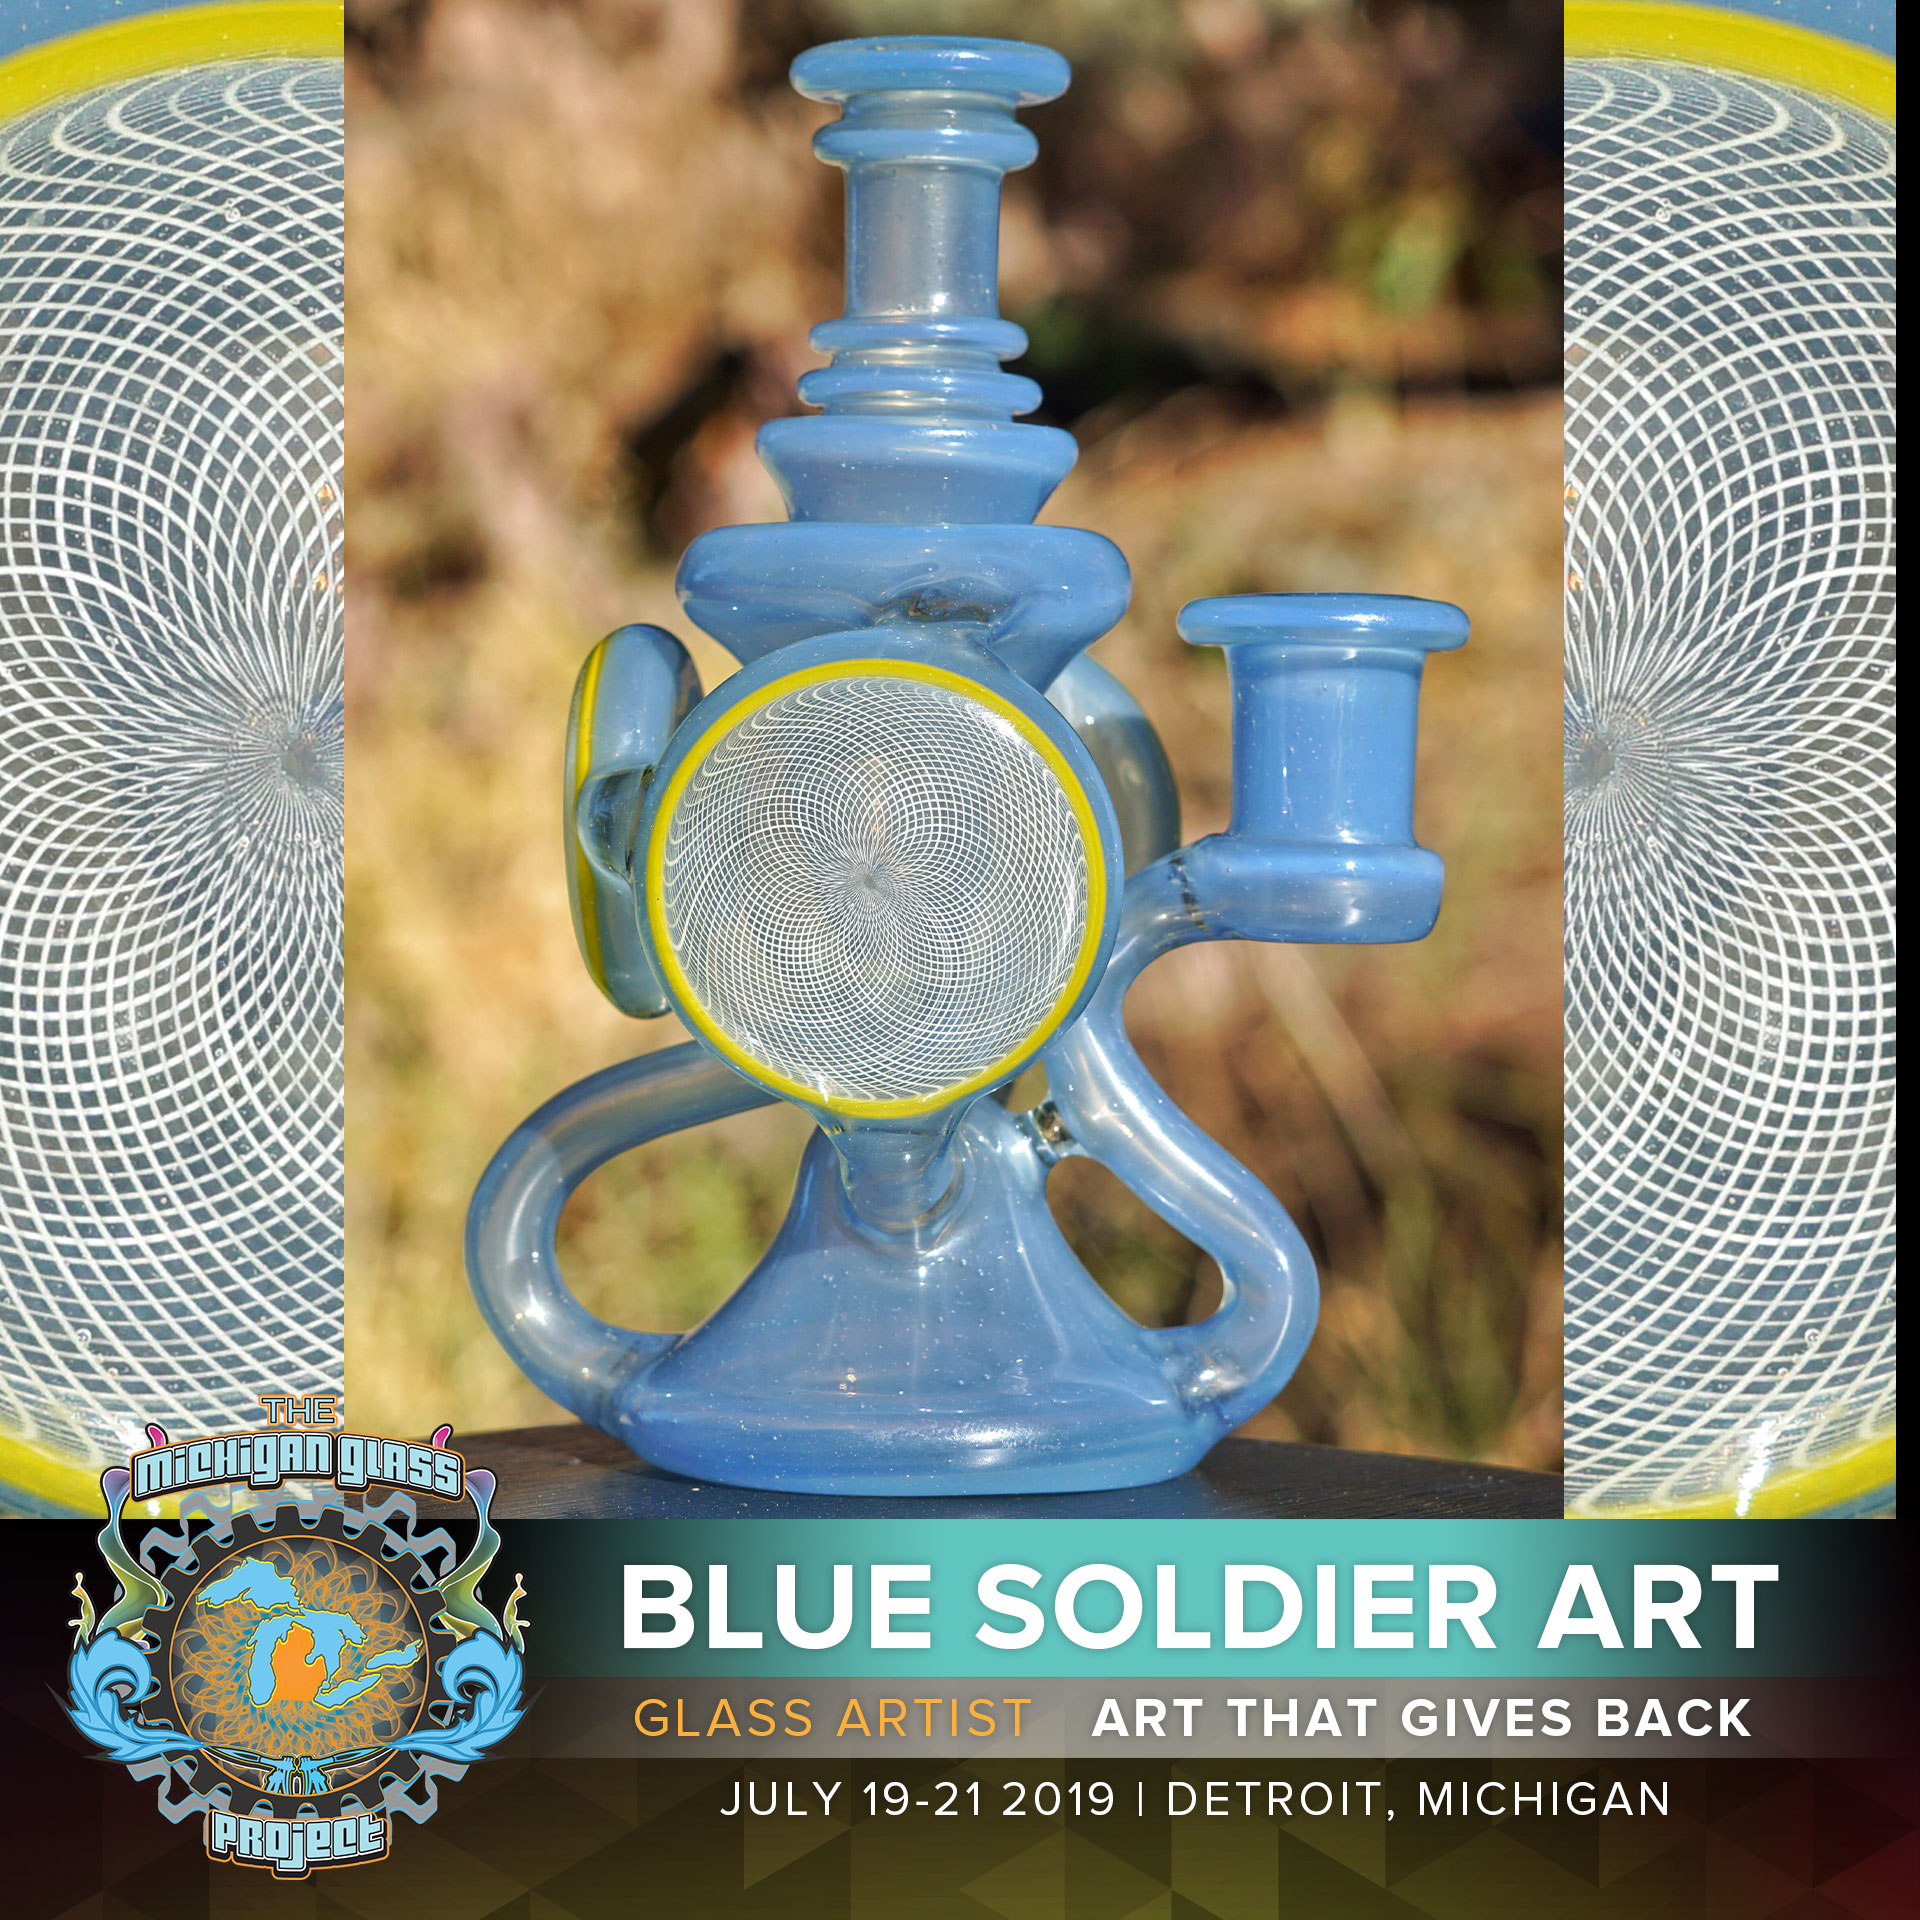 Blue-Soldier-Art_Shoutout